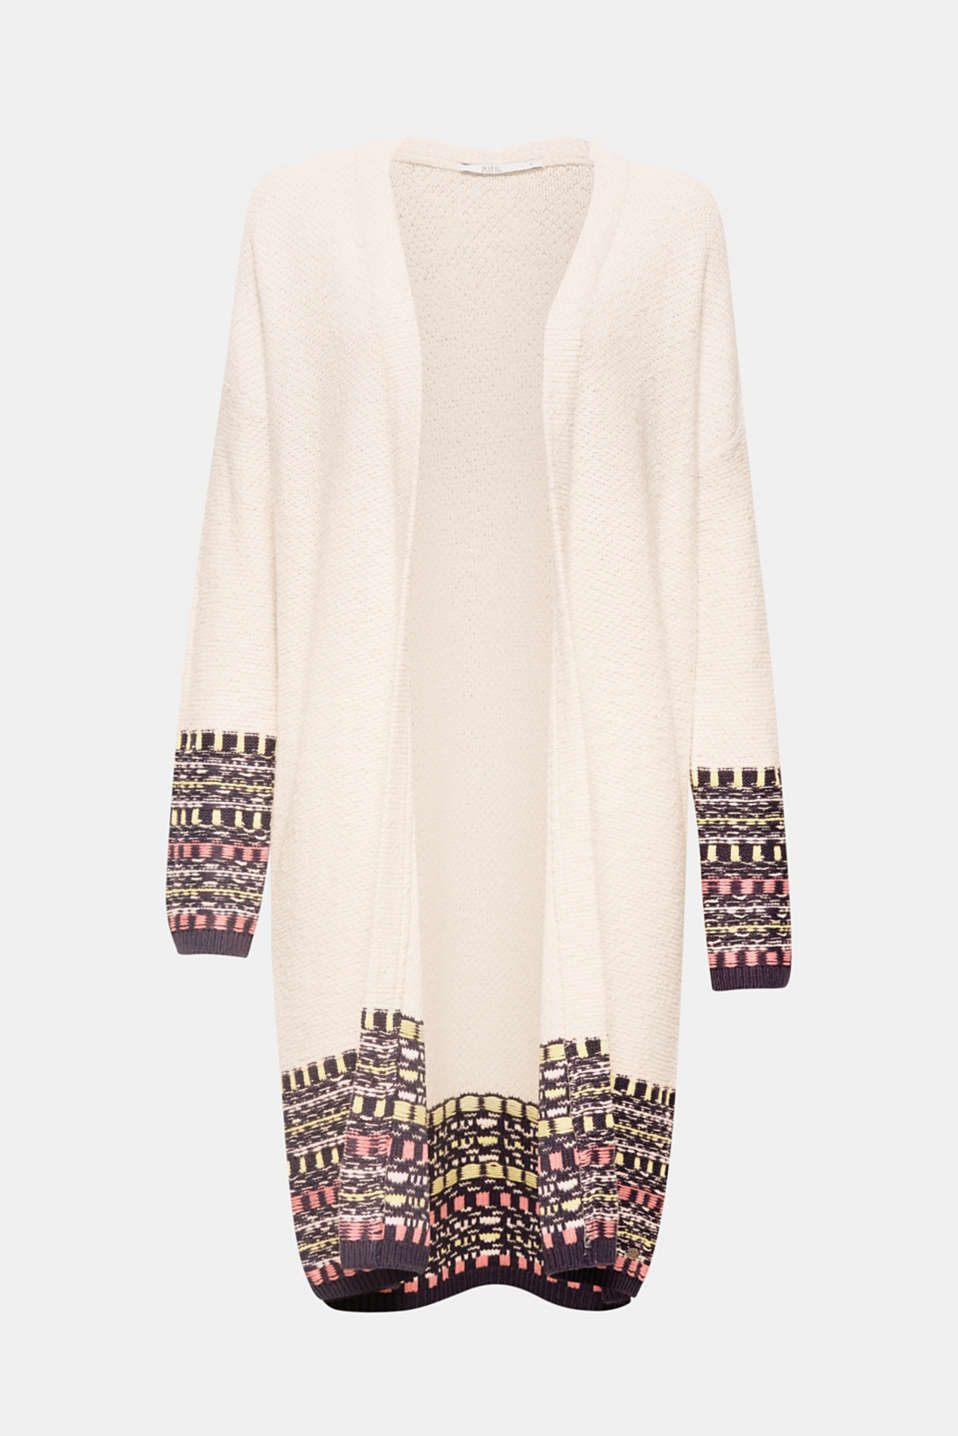 This open-fronted long cardigan wows with multi-coloured jacquard details plus a warming percentage of wool and is a modern knit favourite.